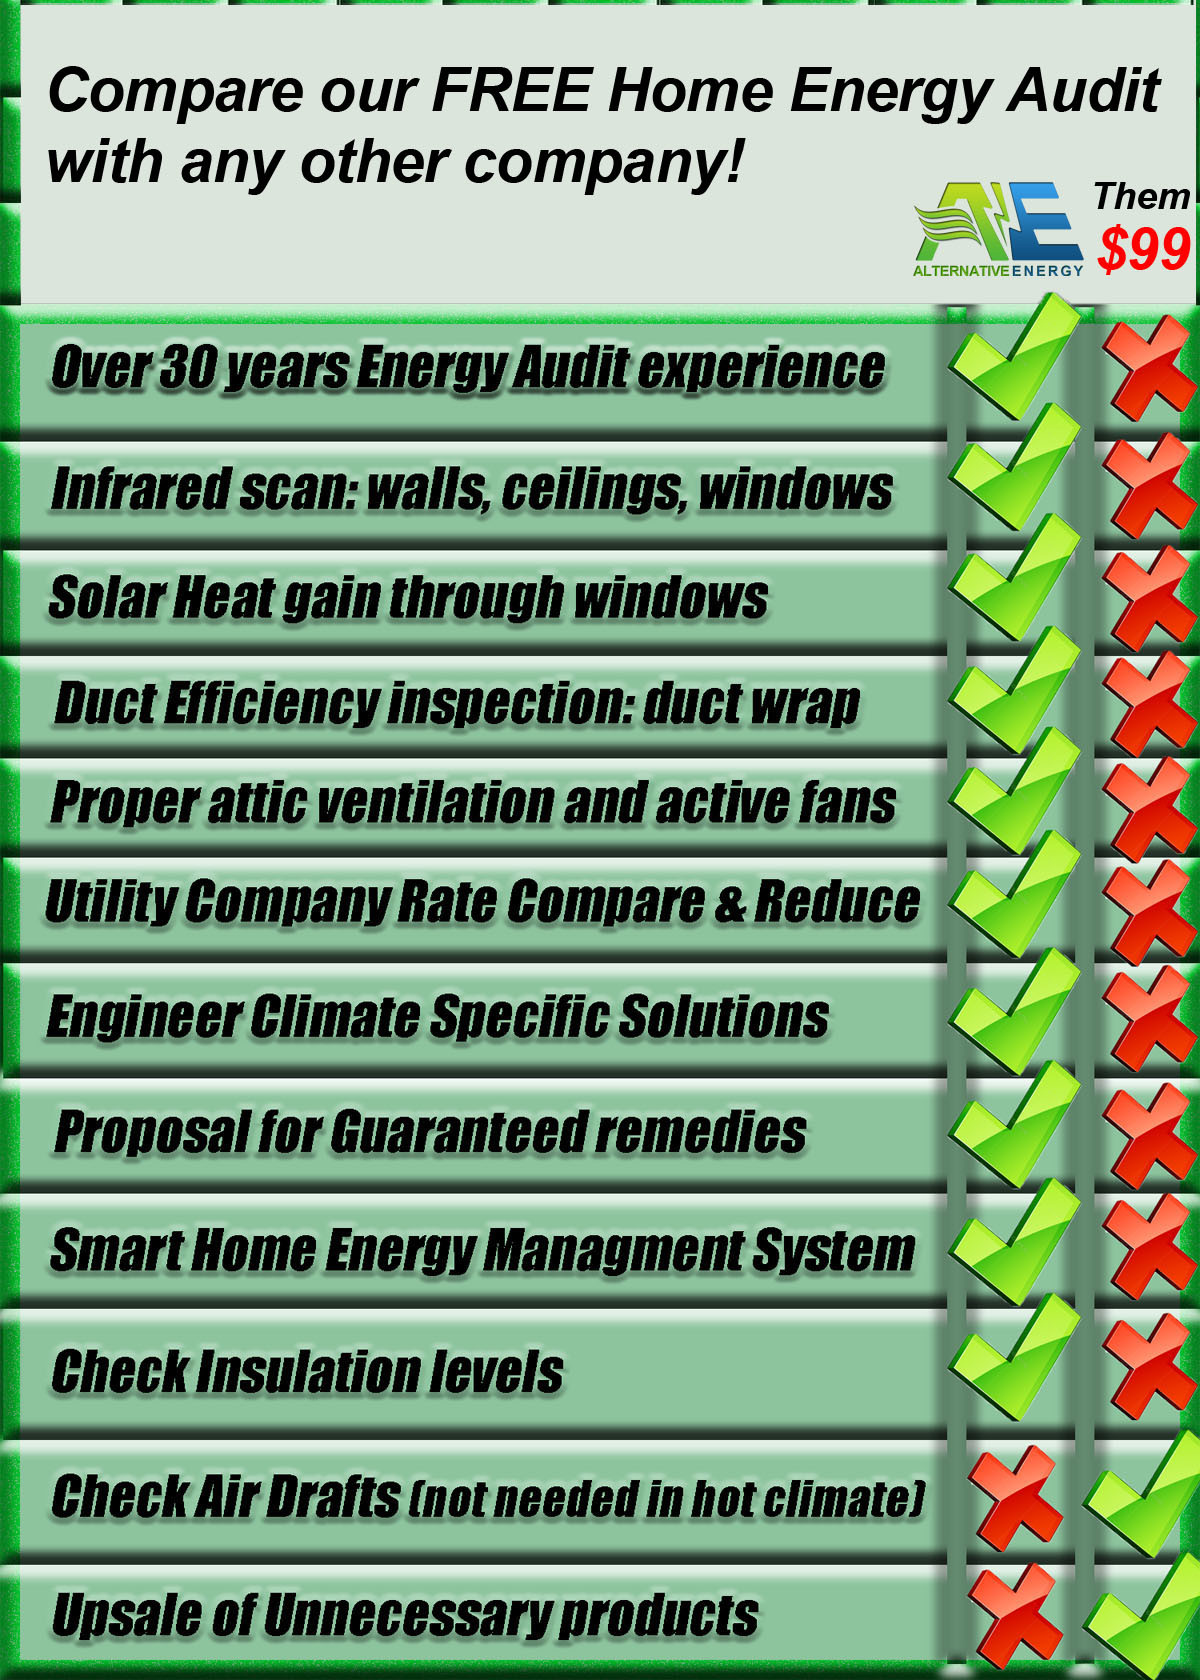 Home Energy Audit Company Comparison Graphic